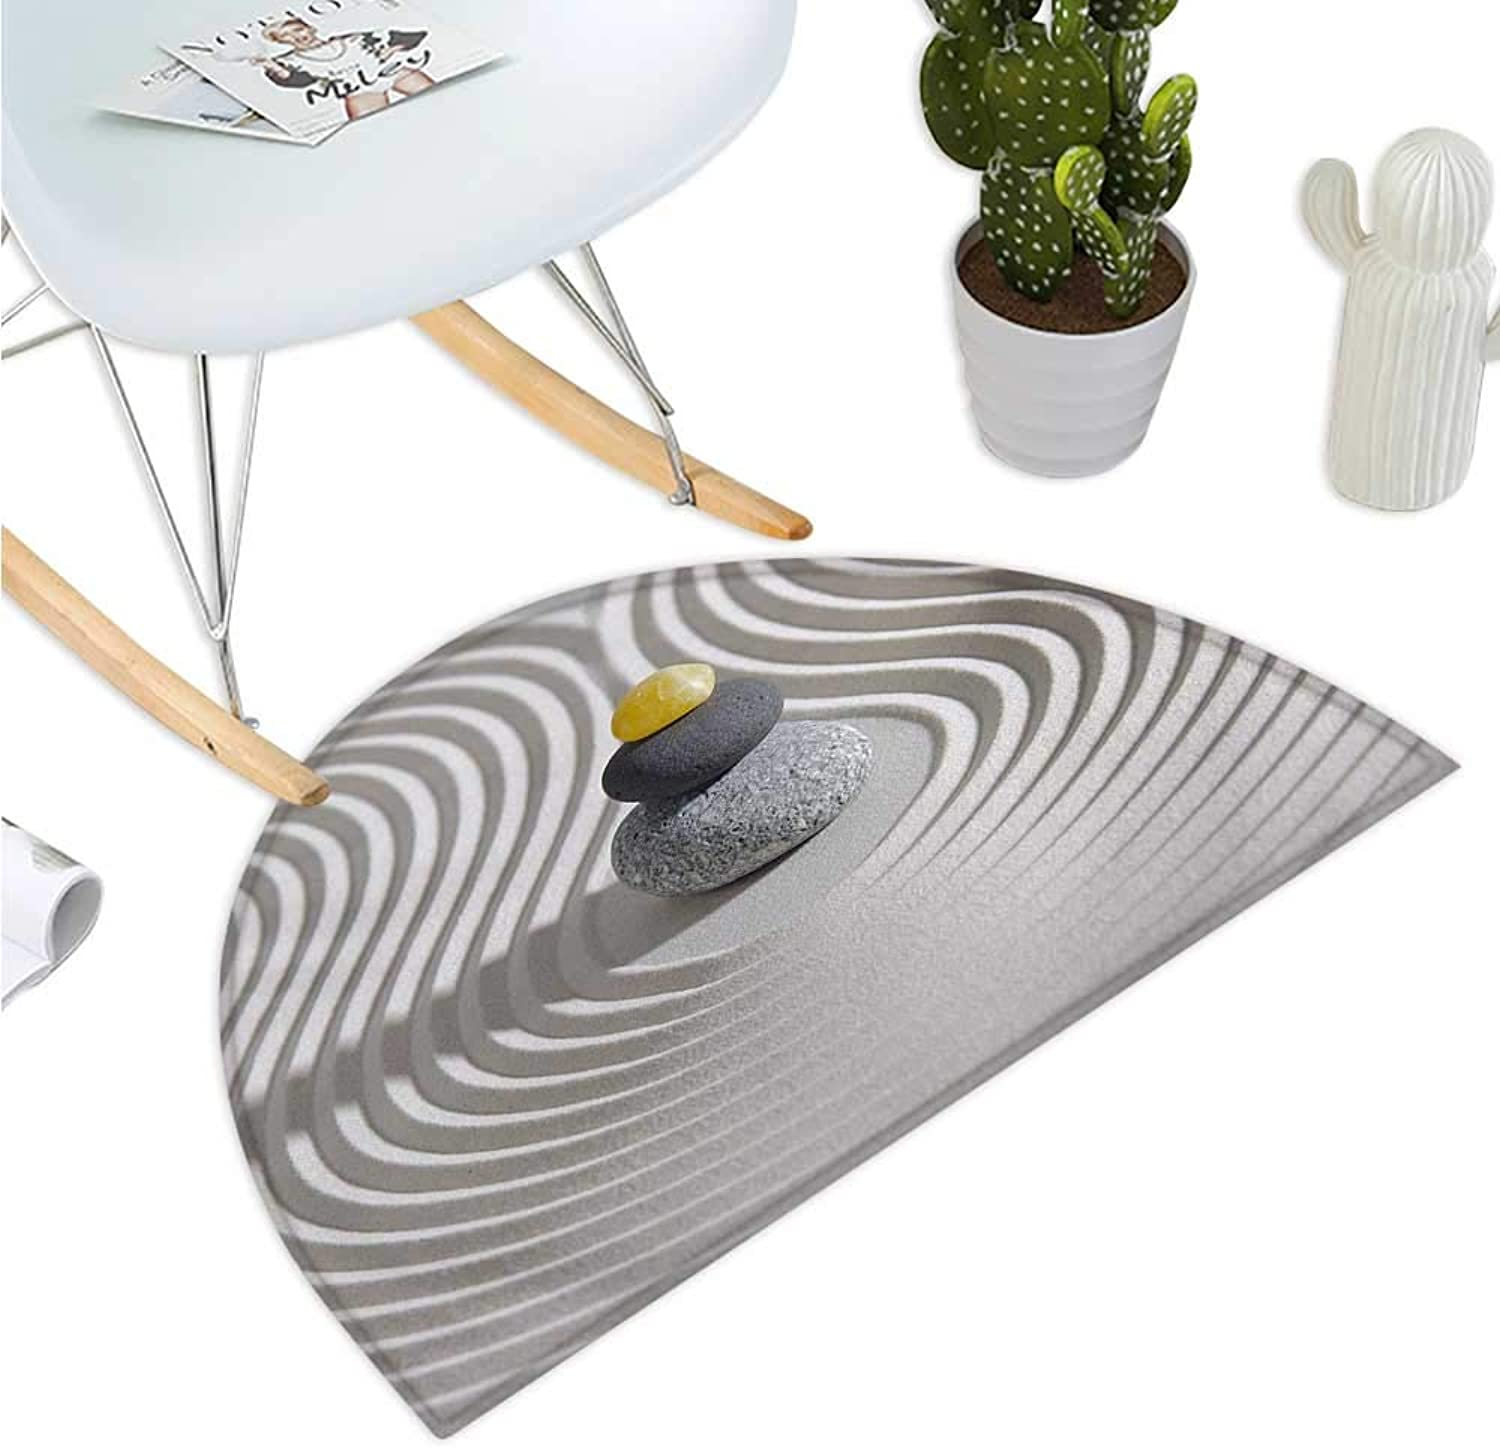 Spa Semicircular Cushion Three Hot Massage Stones in The Middle of The White Sand Shaped Waves Artwork Halfmoon doormats H 39.3  xD 59  Grey and Yellow